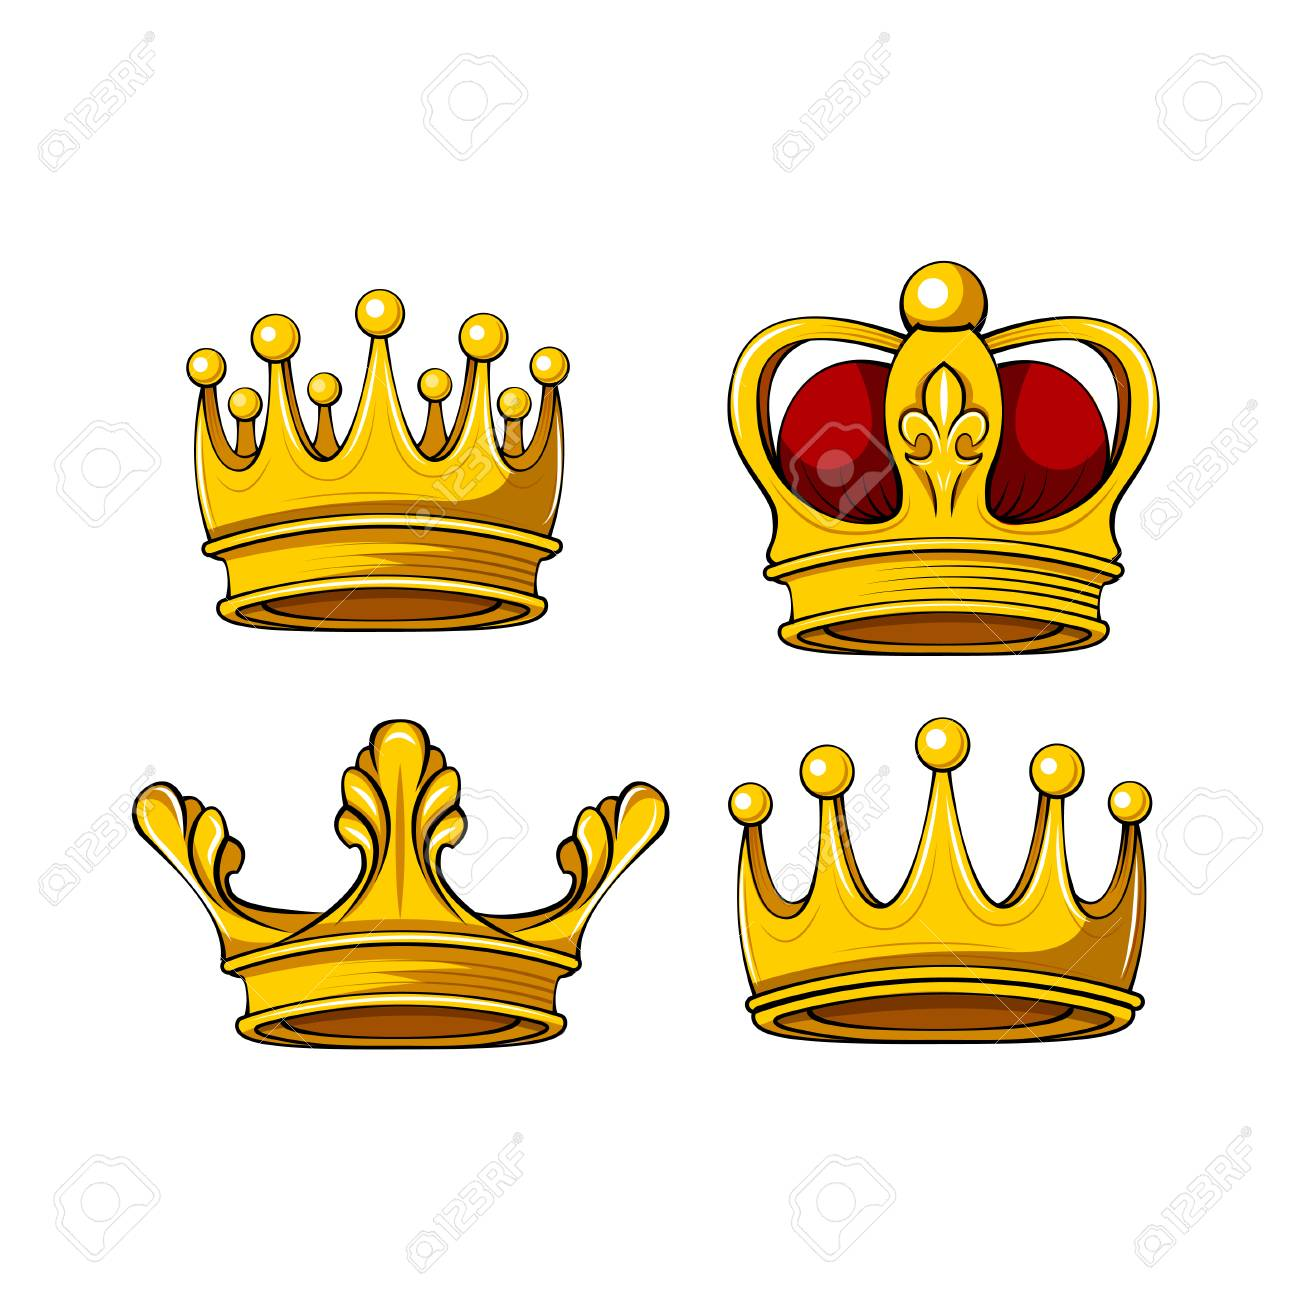 Cartoon Royal Crown Icons Set Vector King Queen Prince Princess